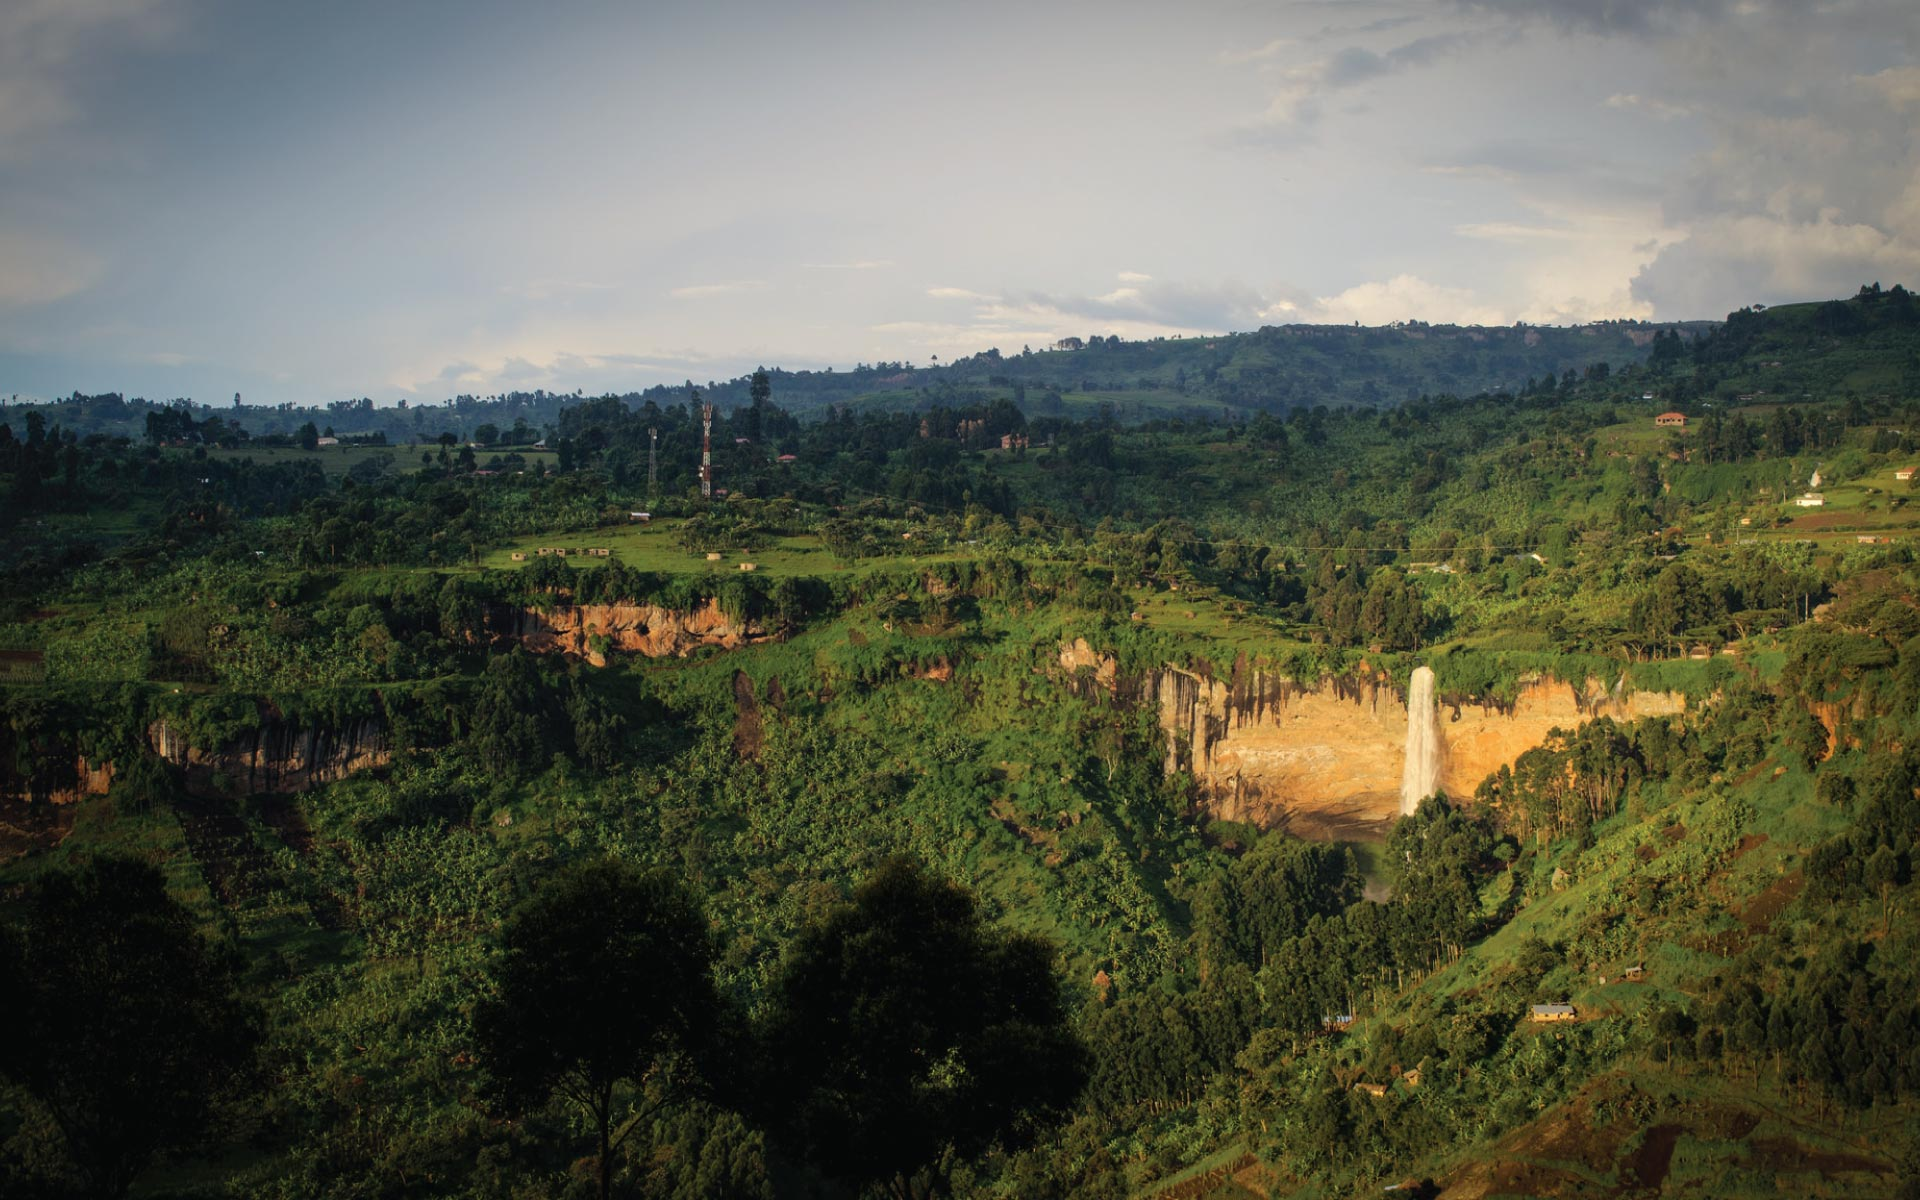 MT ELGON NATIONAL PARK, Uganda